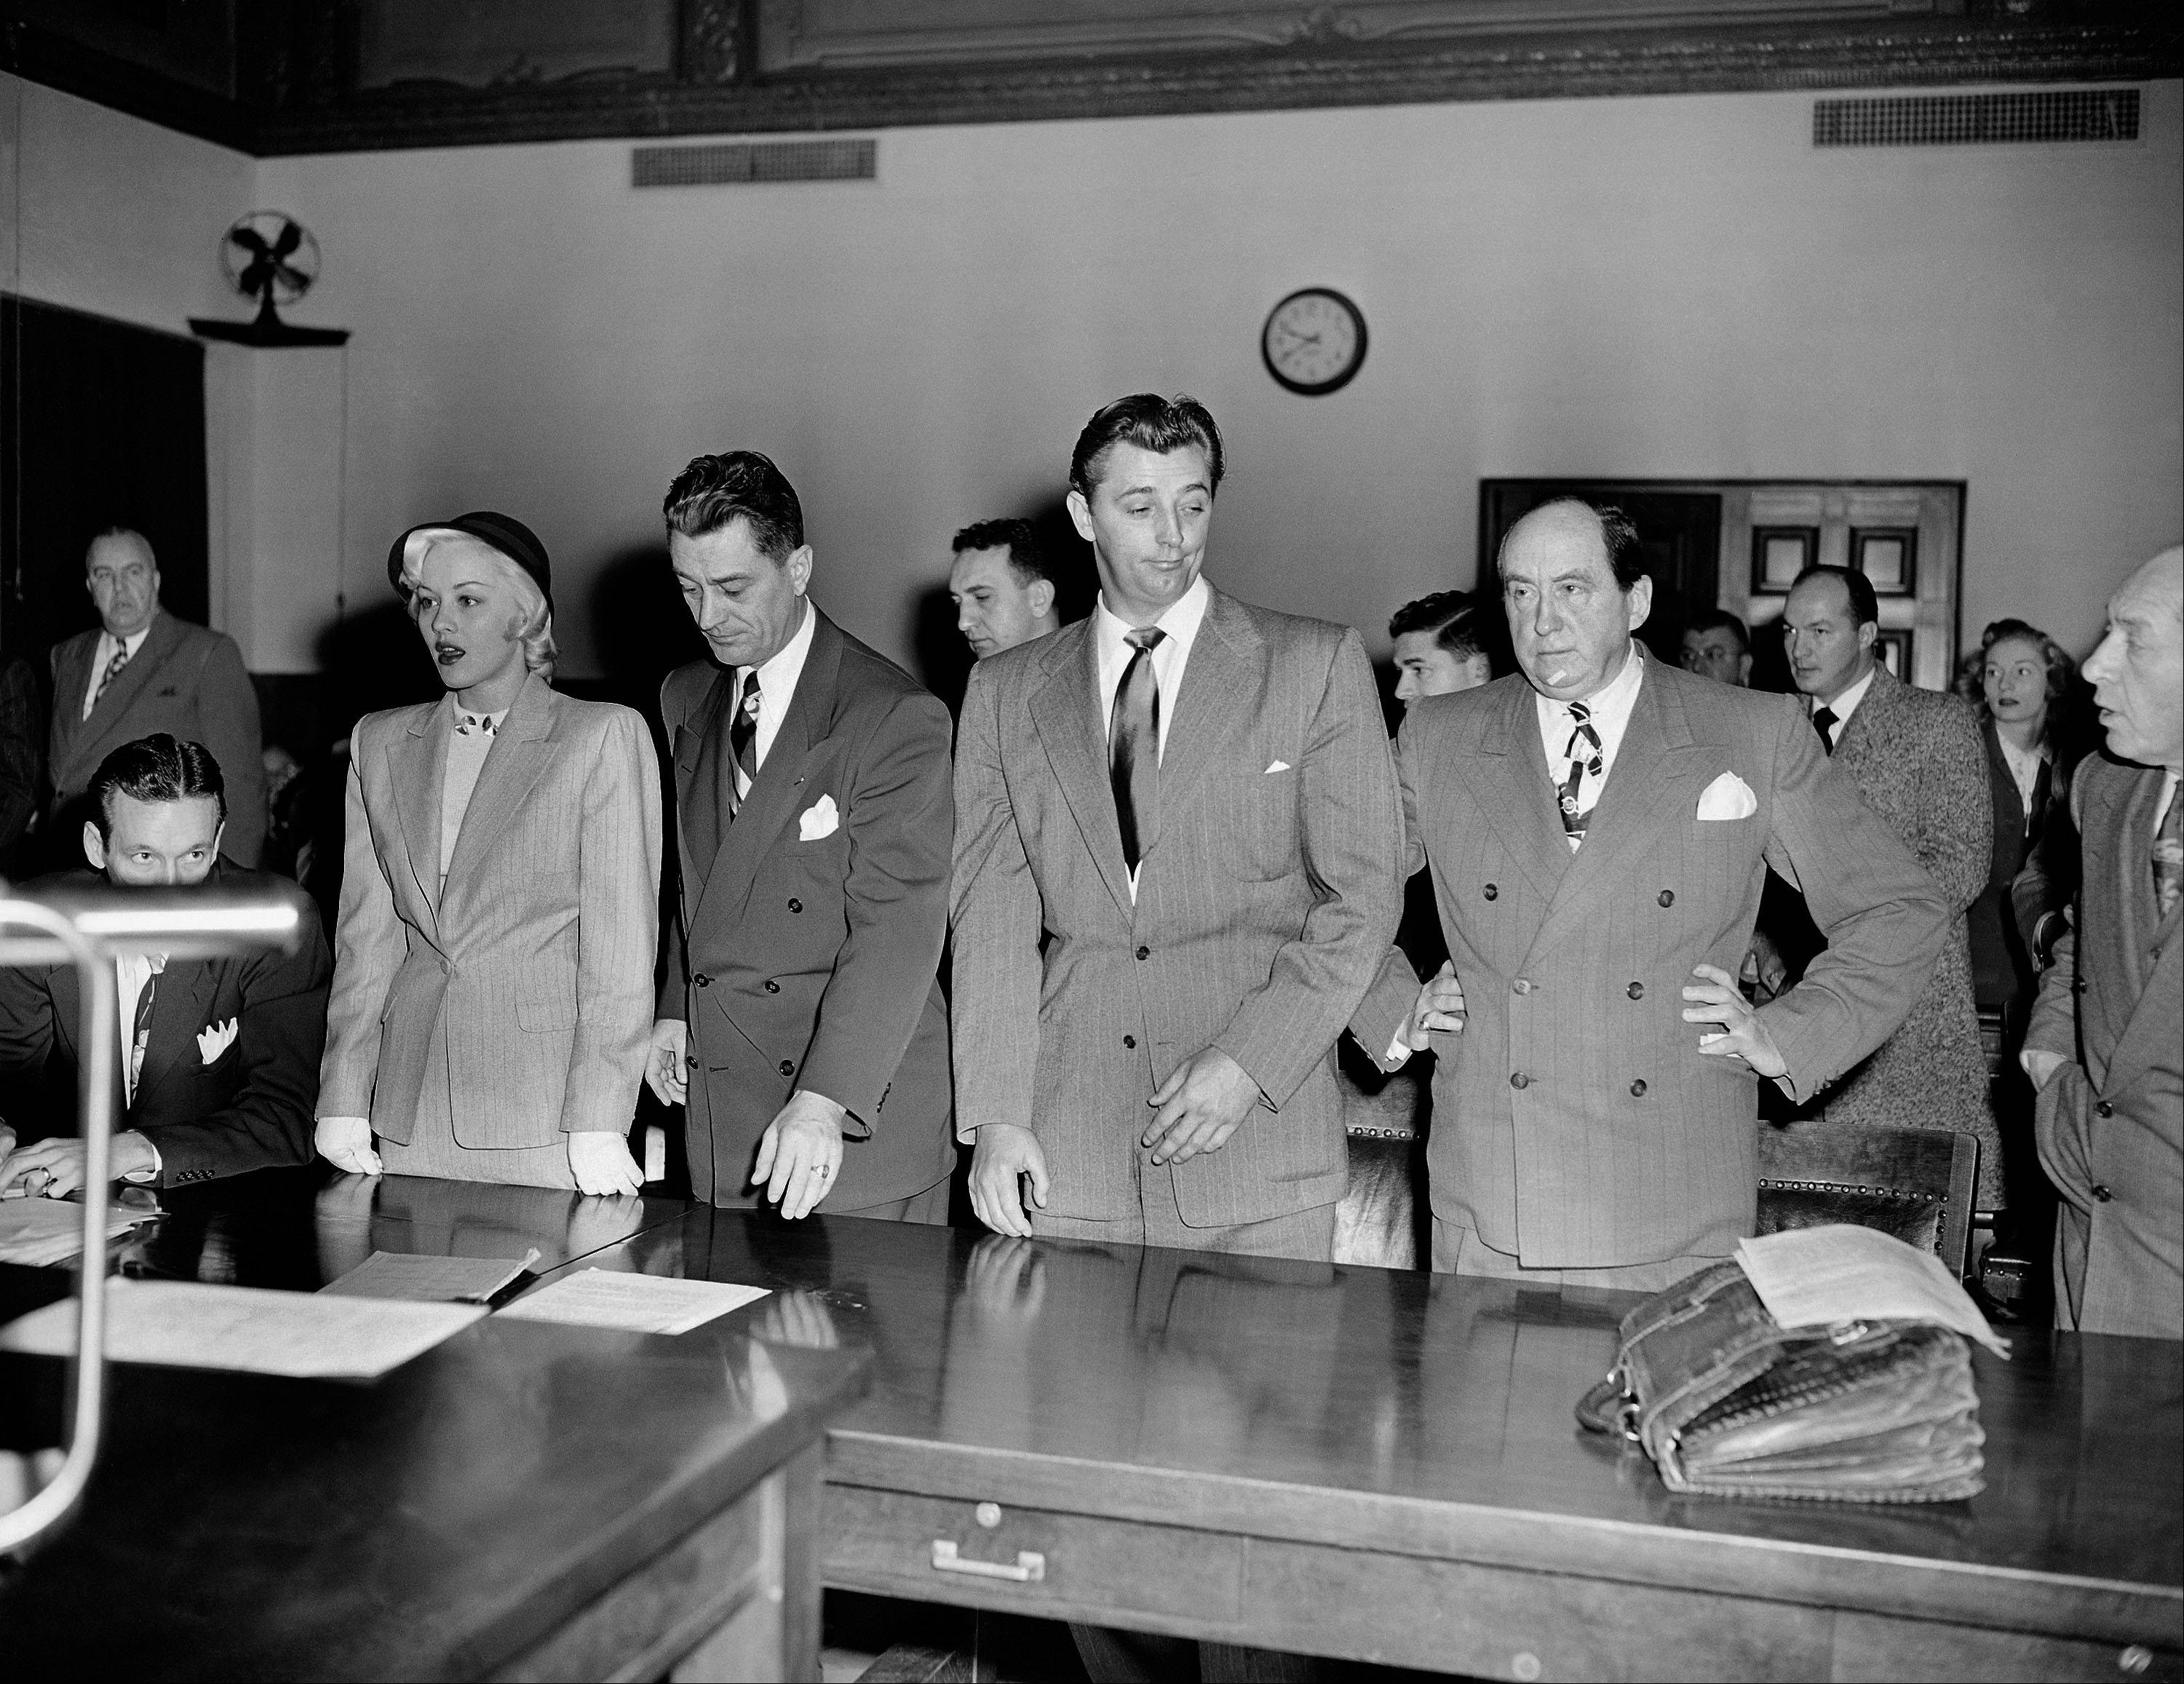 In 1949 actor Robert Mitchum, center right, and actress Lila Leeds, left, were sentenced to 60 days in jail on charges of conspiracy to possess marijuana cigarettes in Los Angeles.